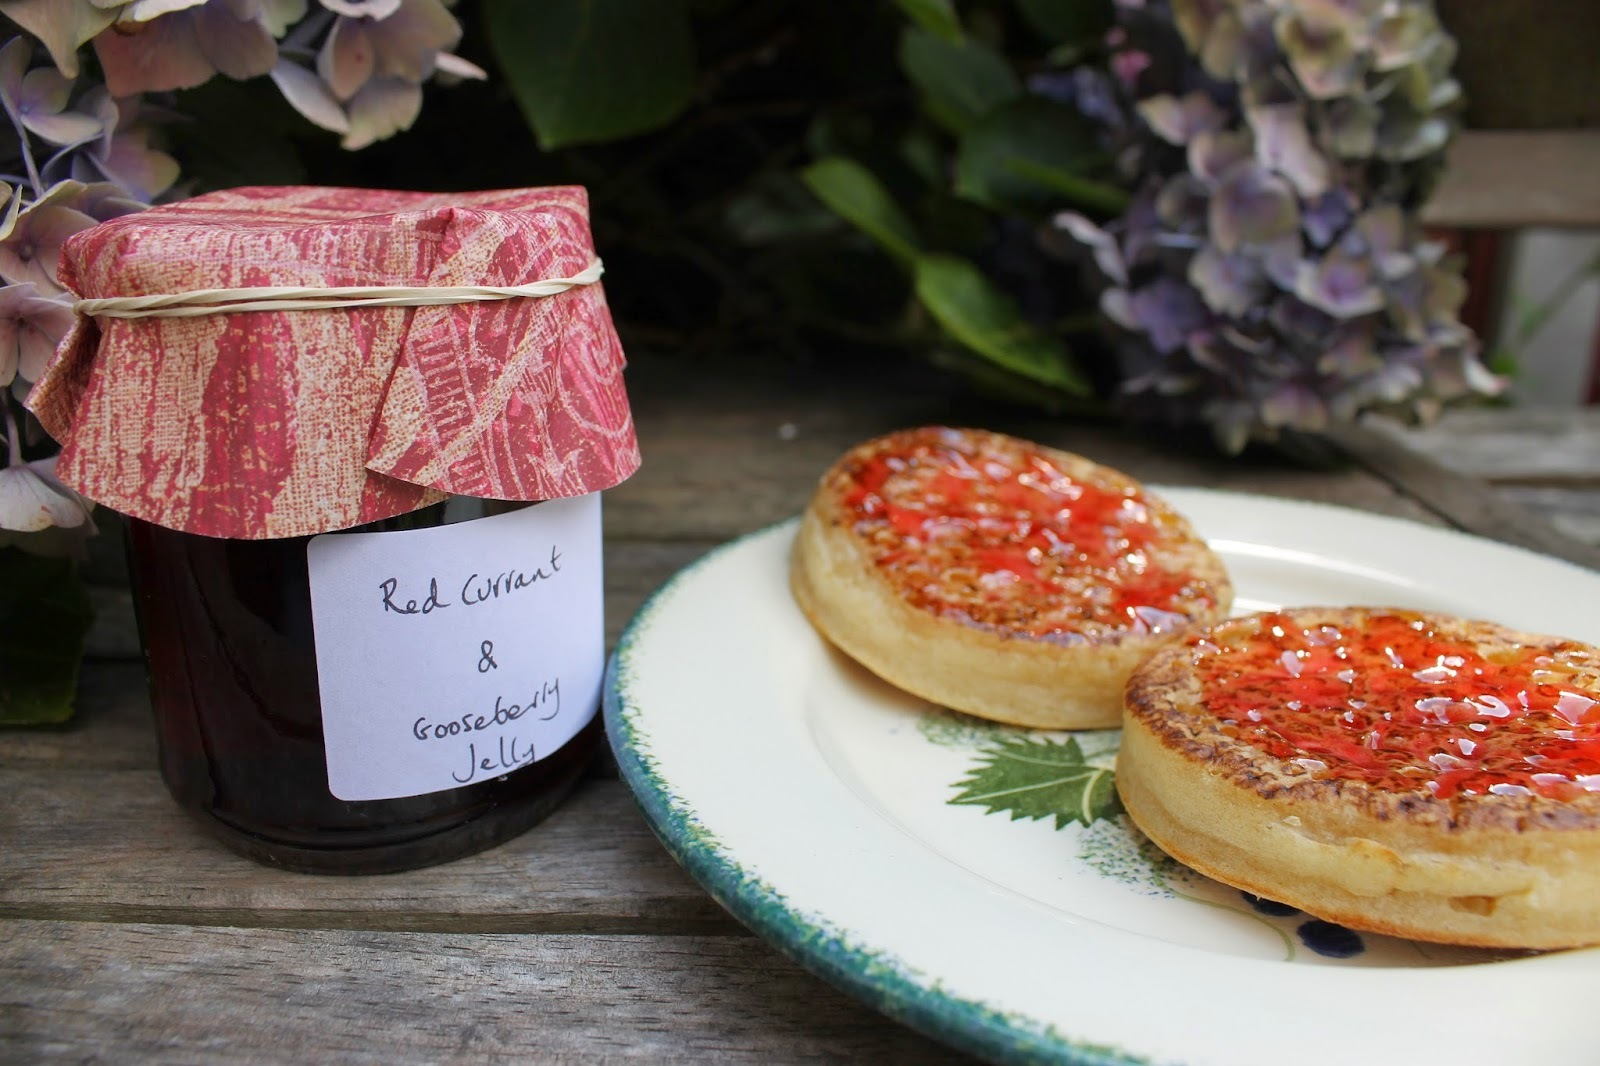 gooseberry and redcurrant jam